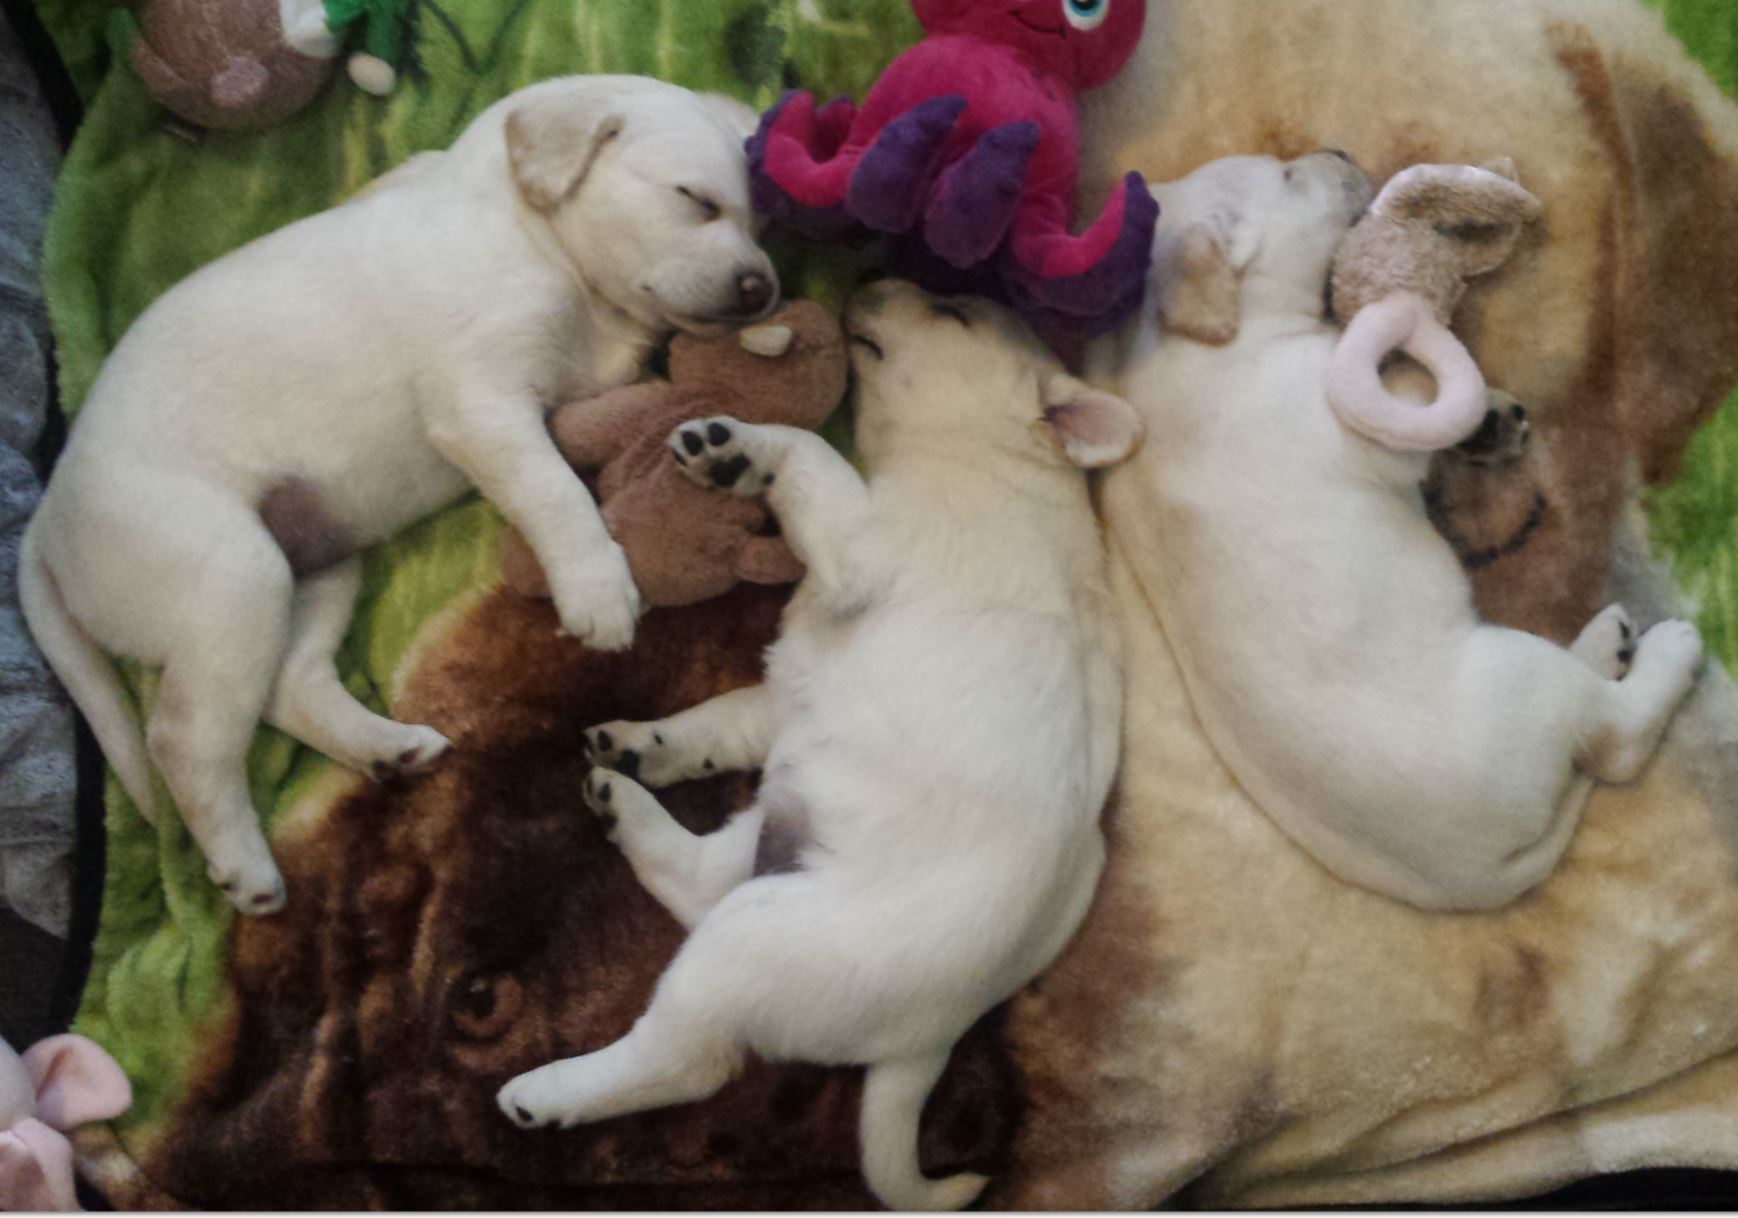 three puppies naping on a soft fur, completly content and safe.